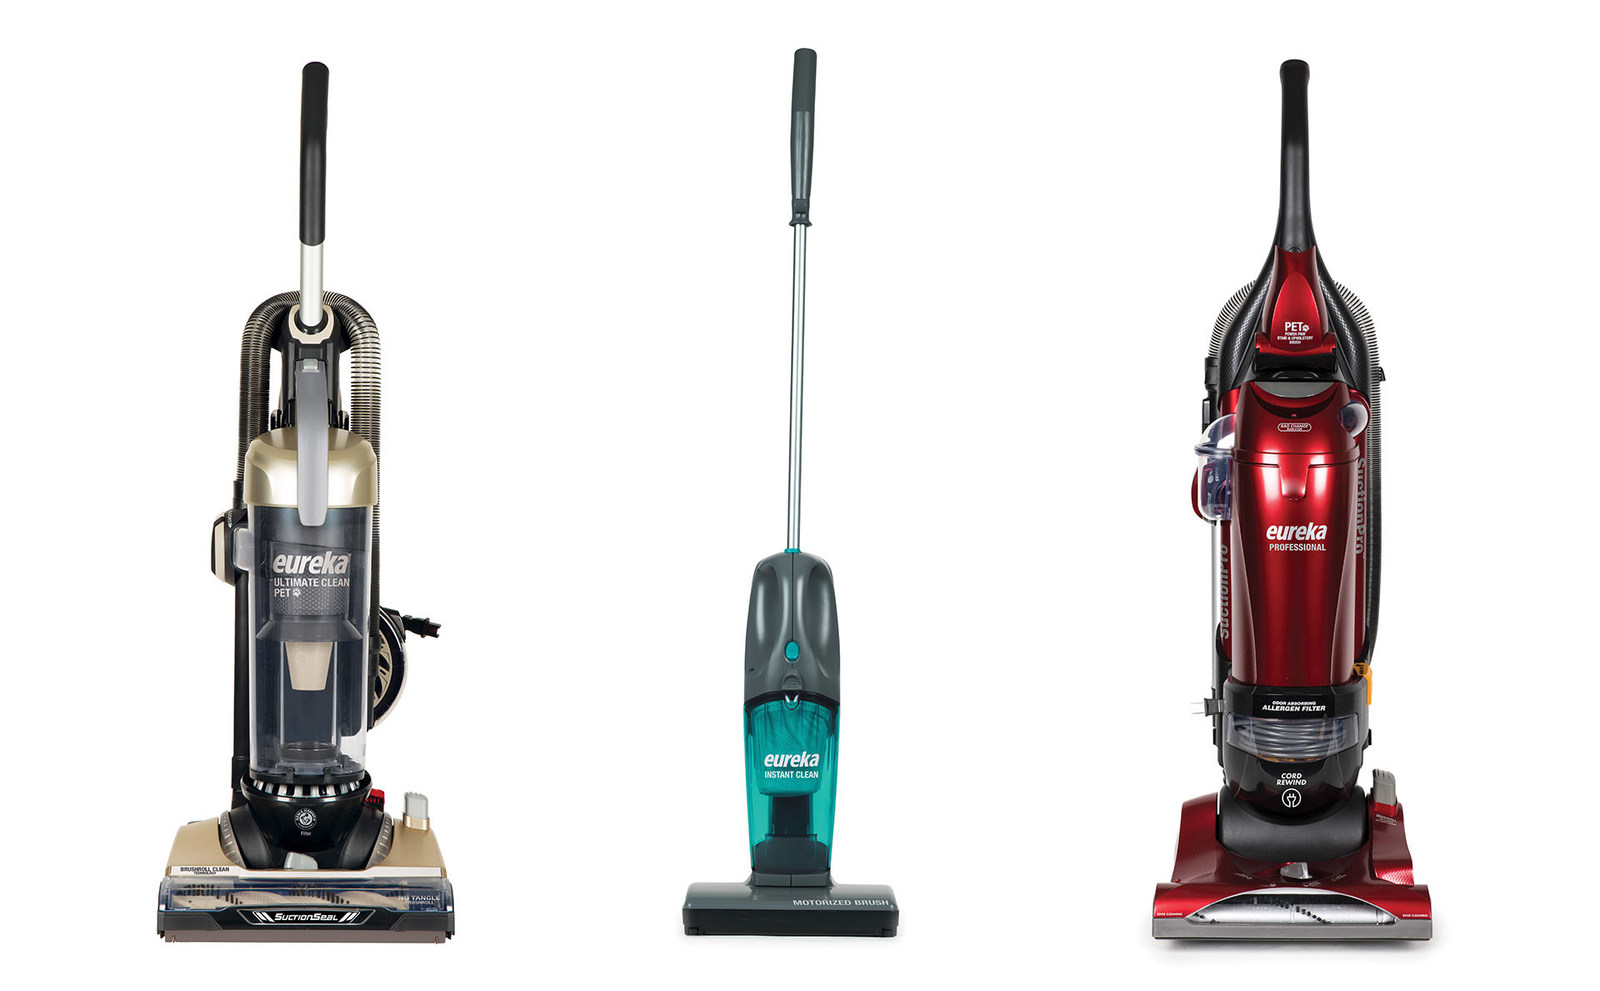 eureka launches new vacuums to revolutionize house cleaning experience eureka s ultimate clean pet max as3451a left the instant clean